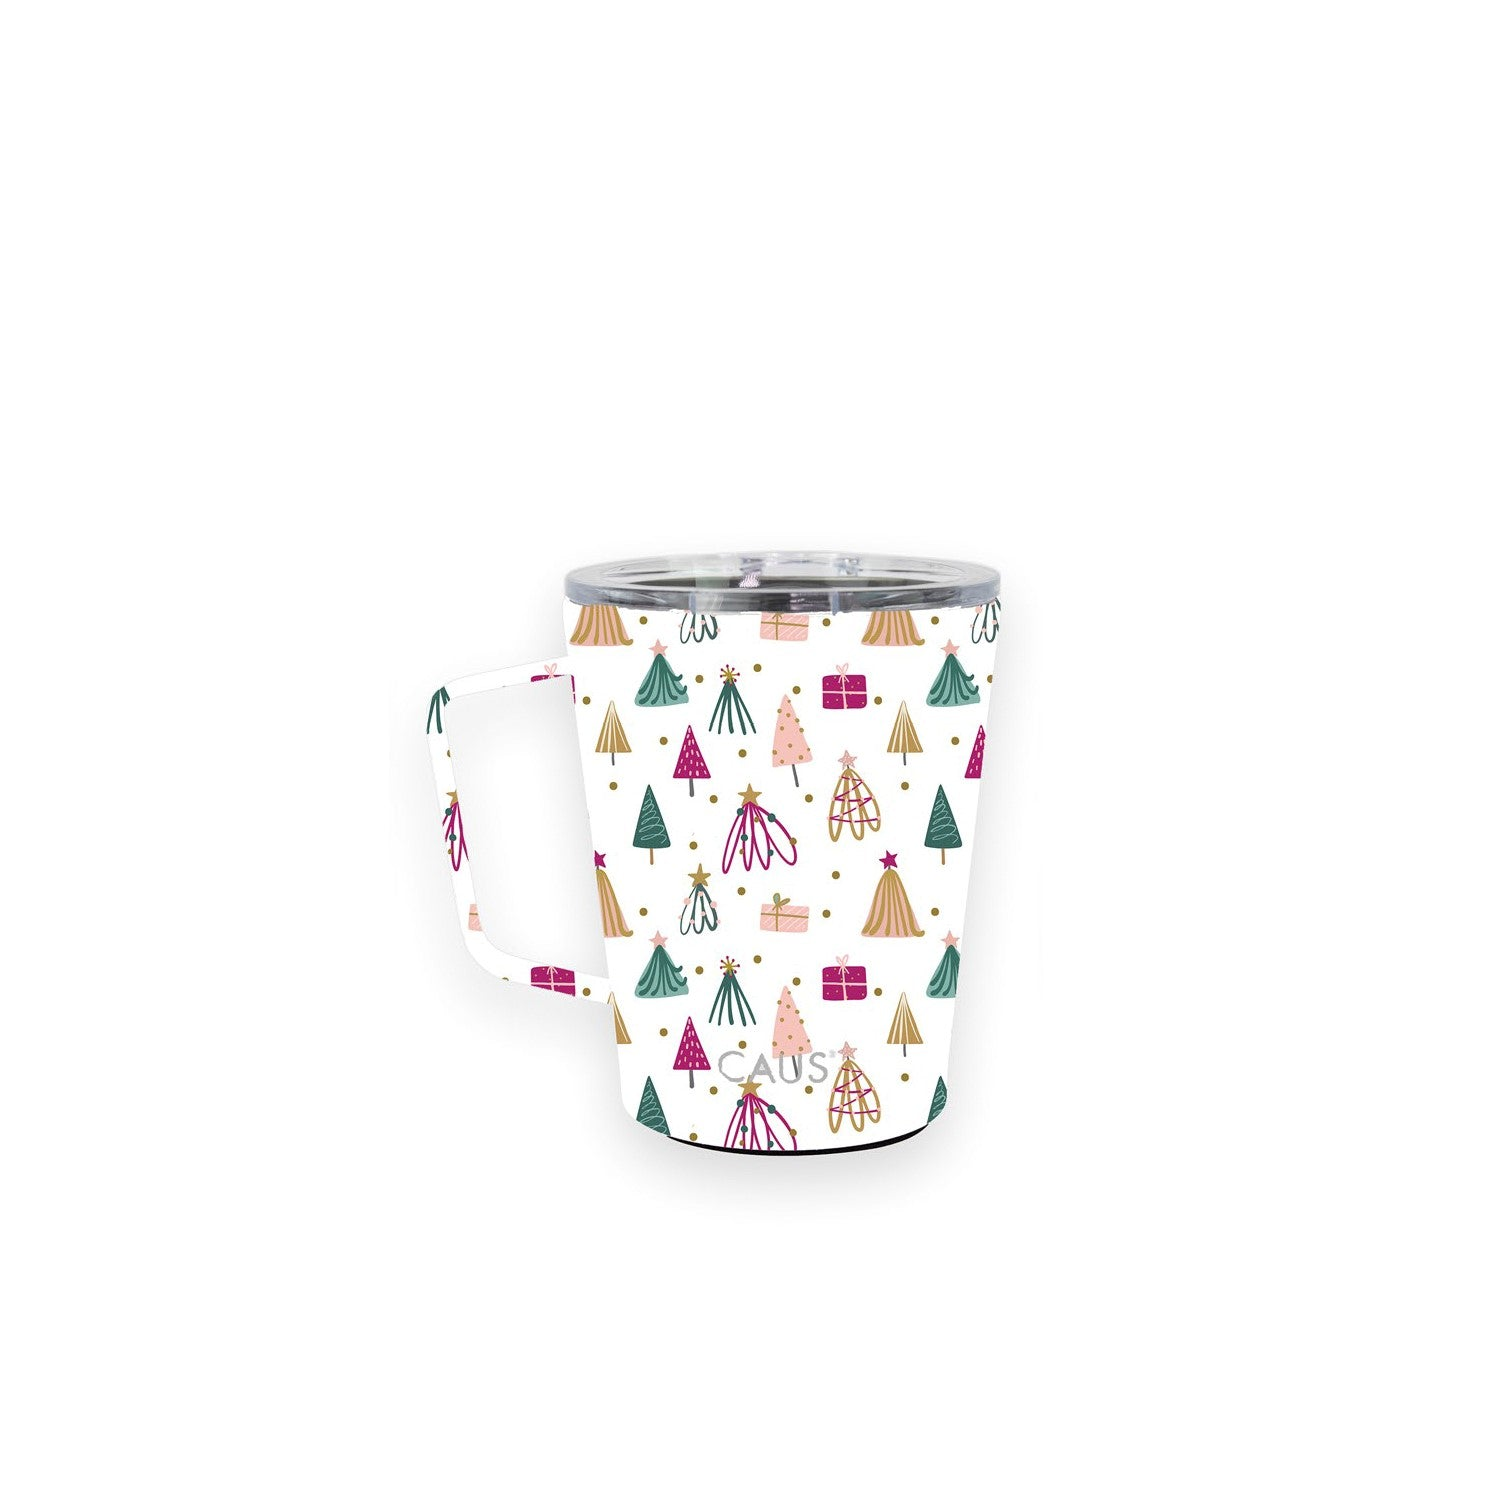 CAUS Coffee Tumbler Whimsical Winter